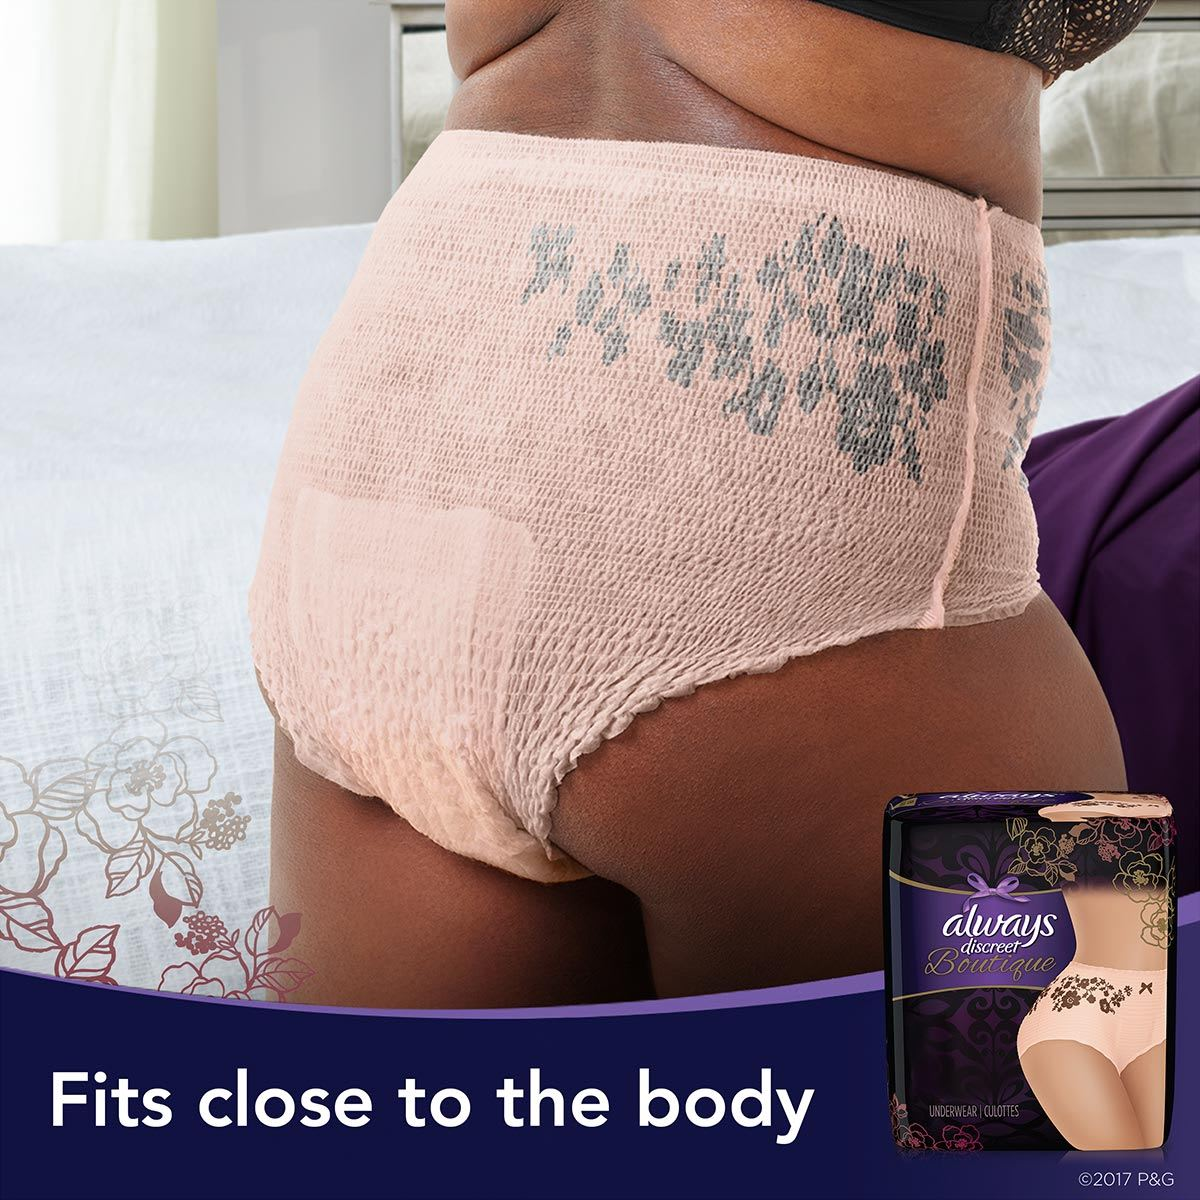 Fit close to the body